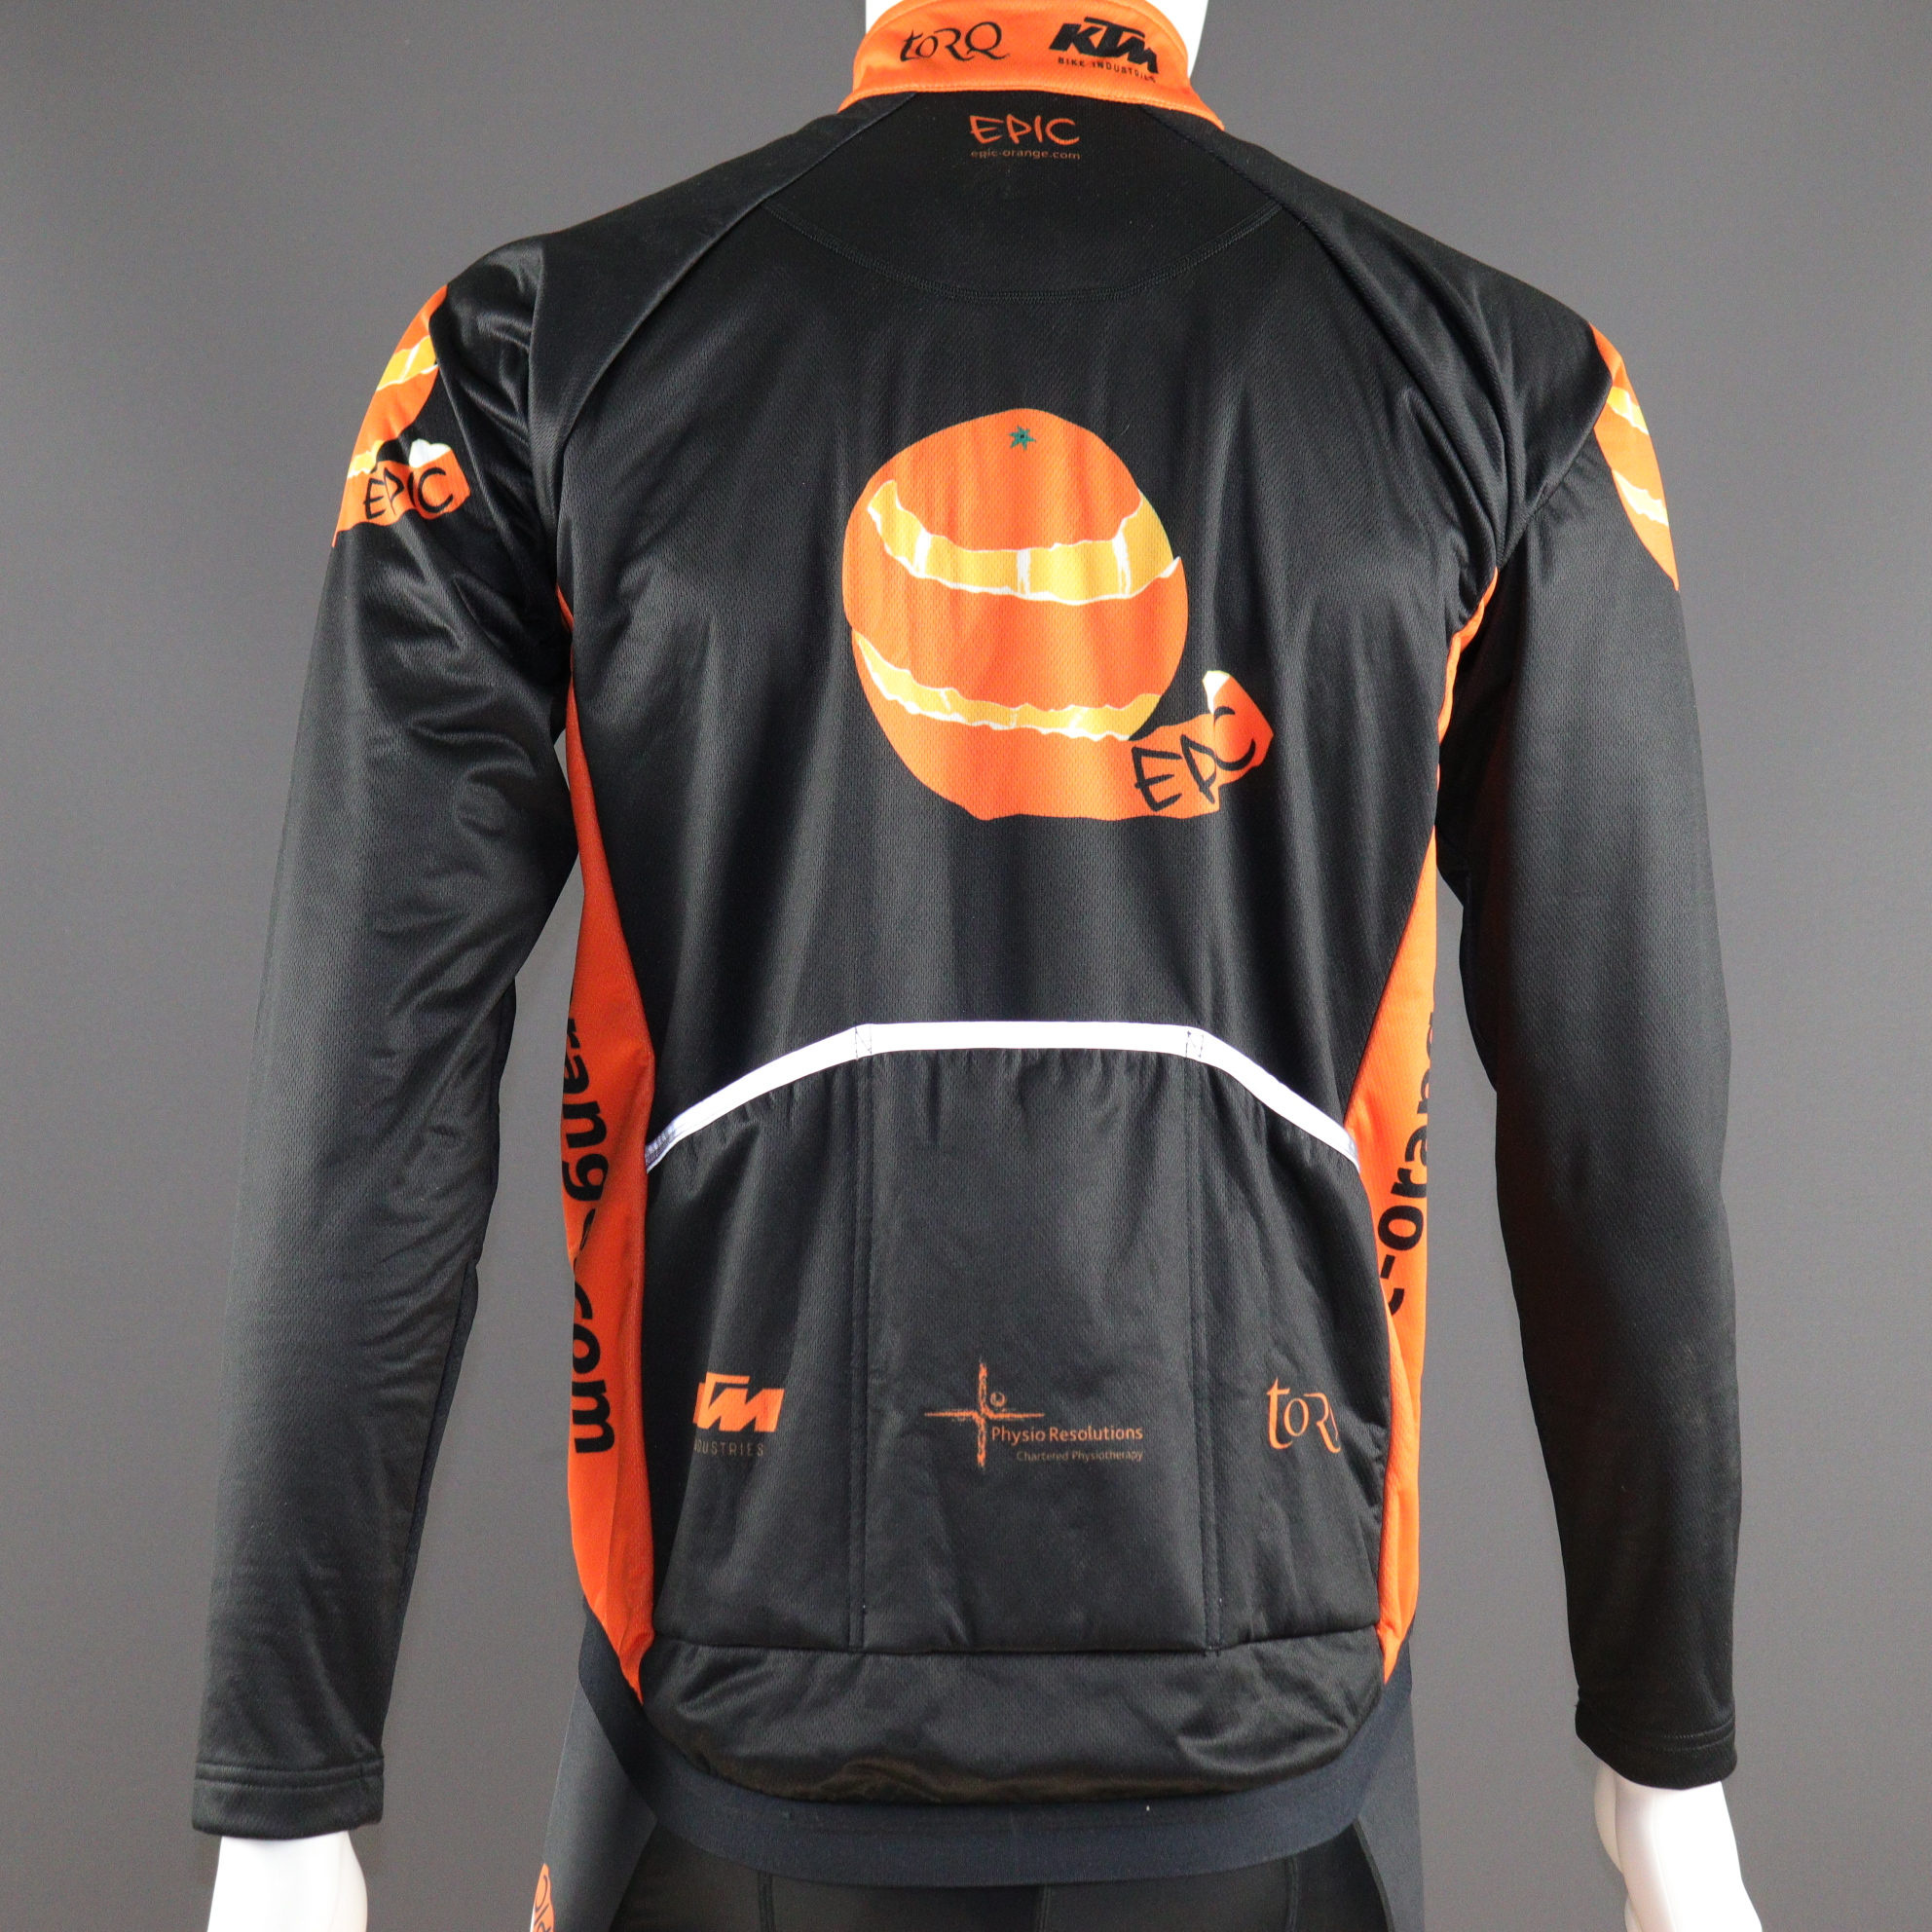 Custom Winter Cycling Jackets - Reflective pack